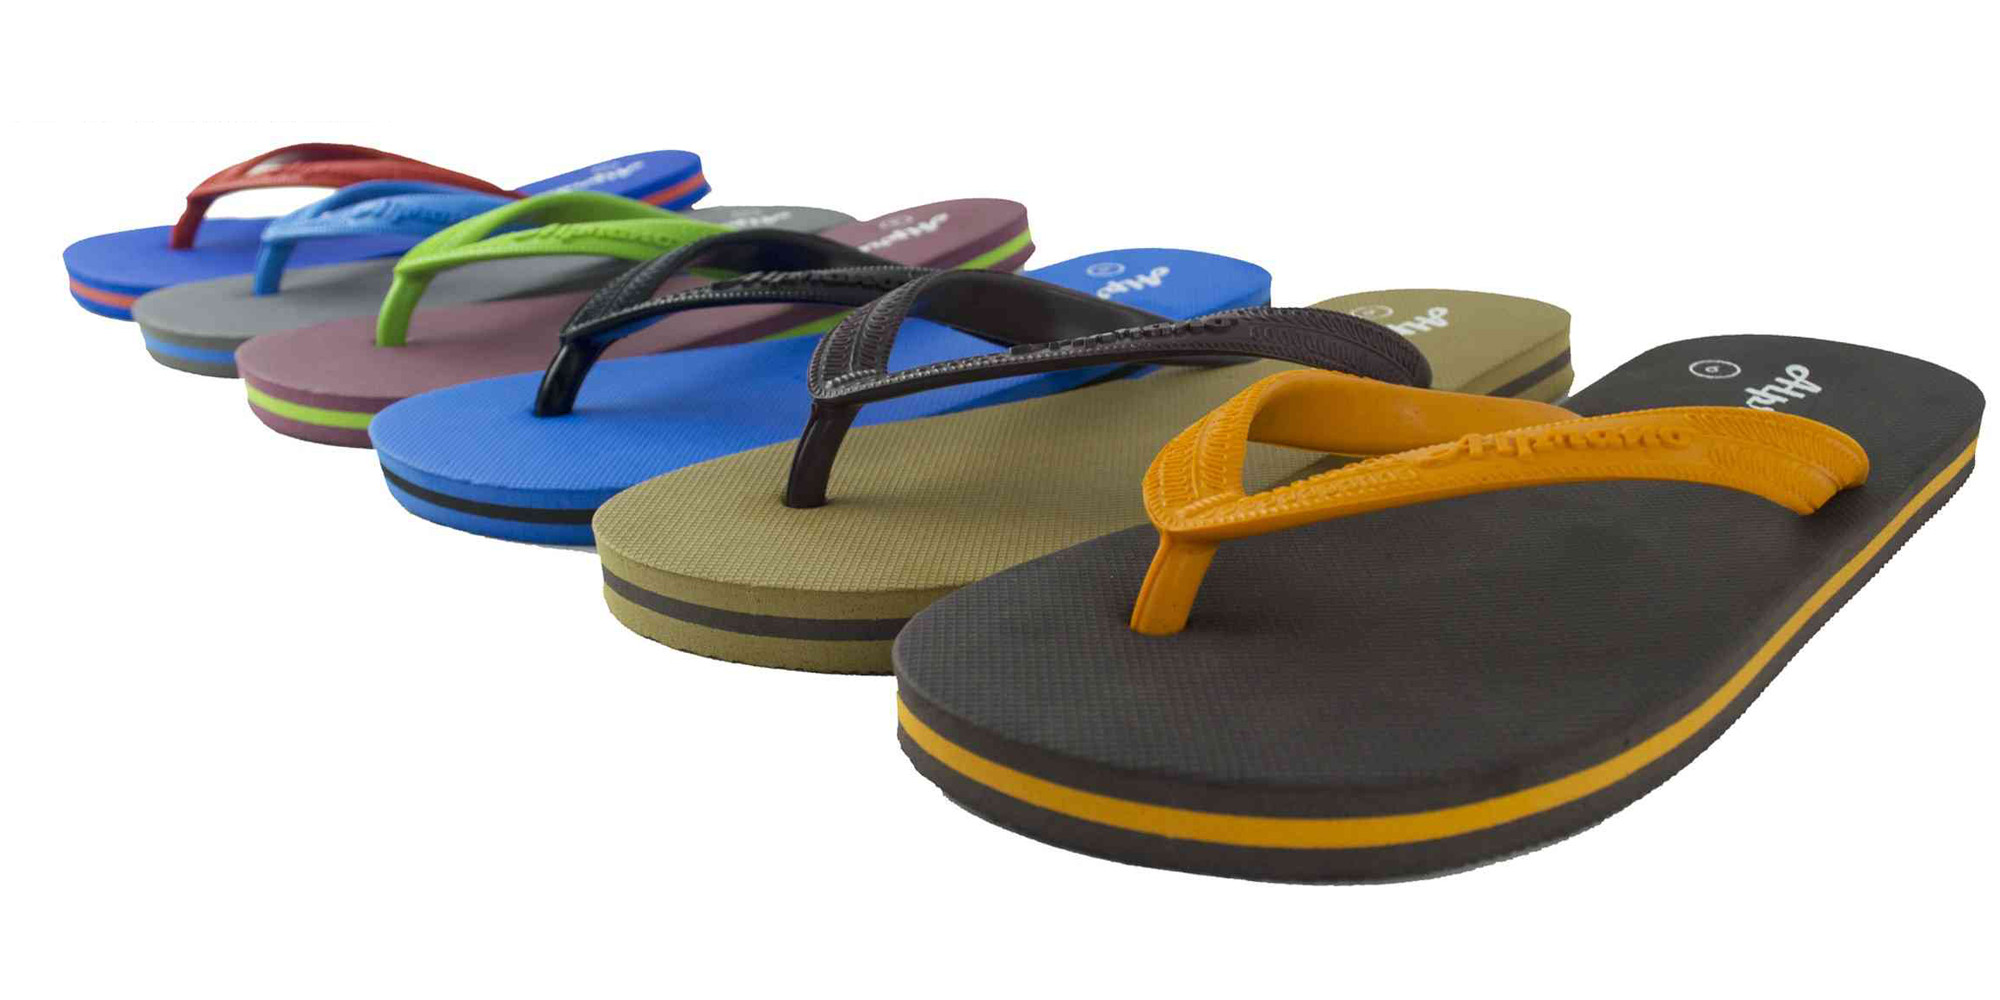 JN-APM06 (UK10) Alprano Slipper